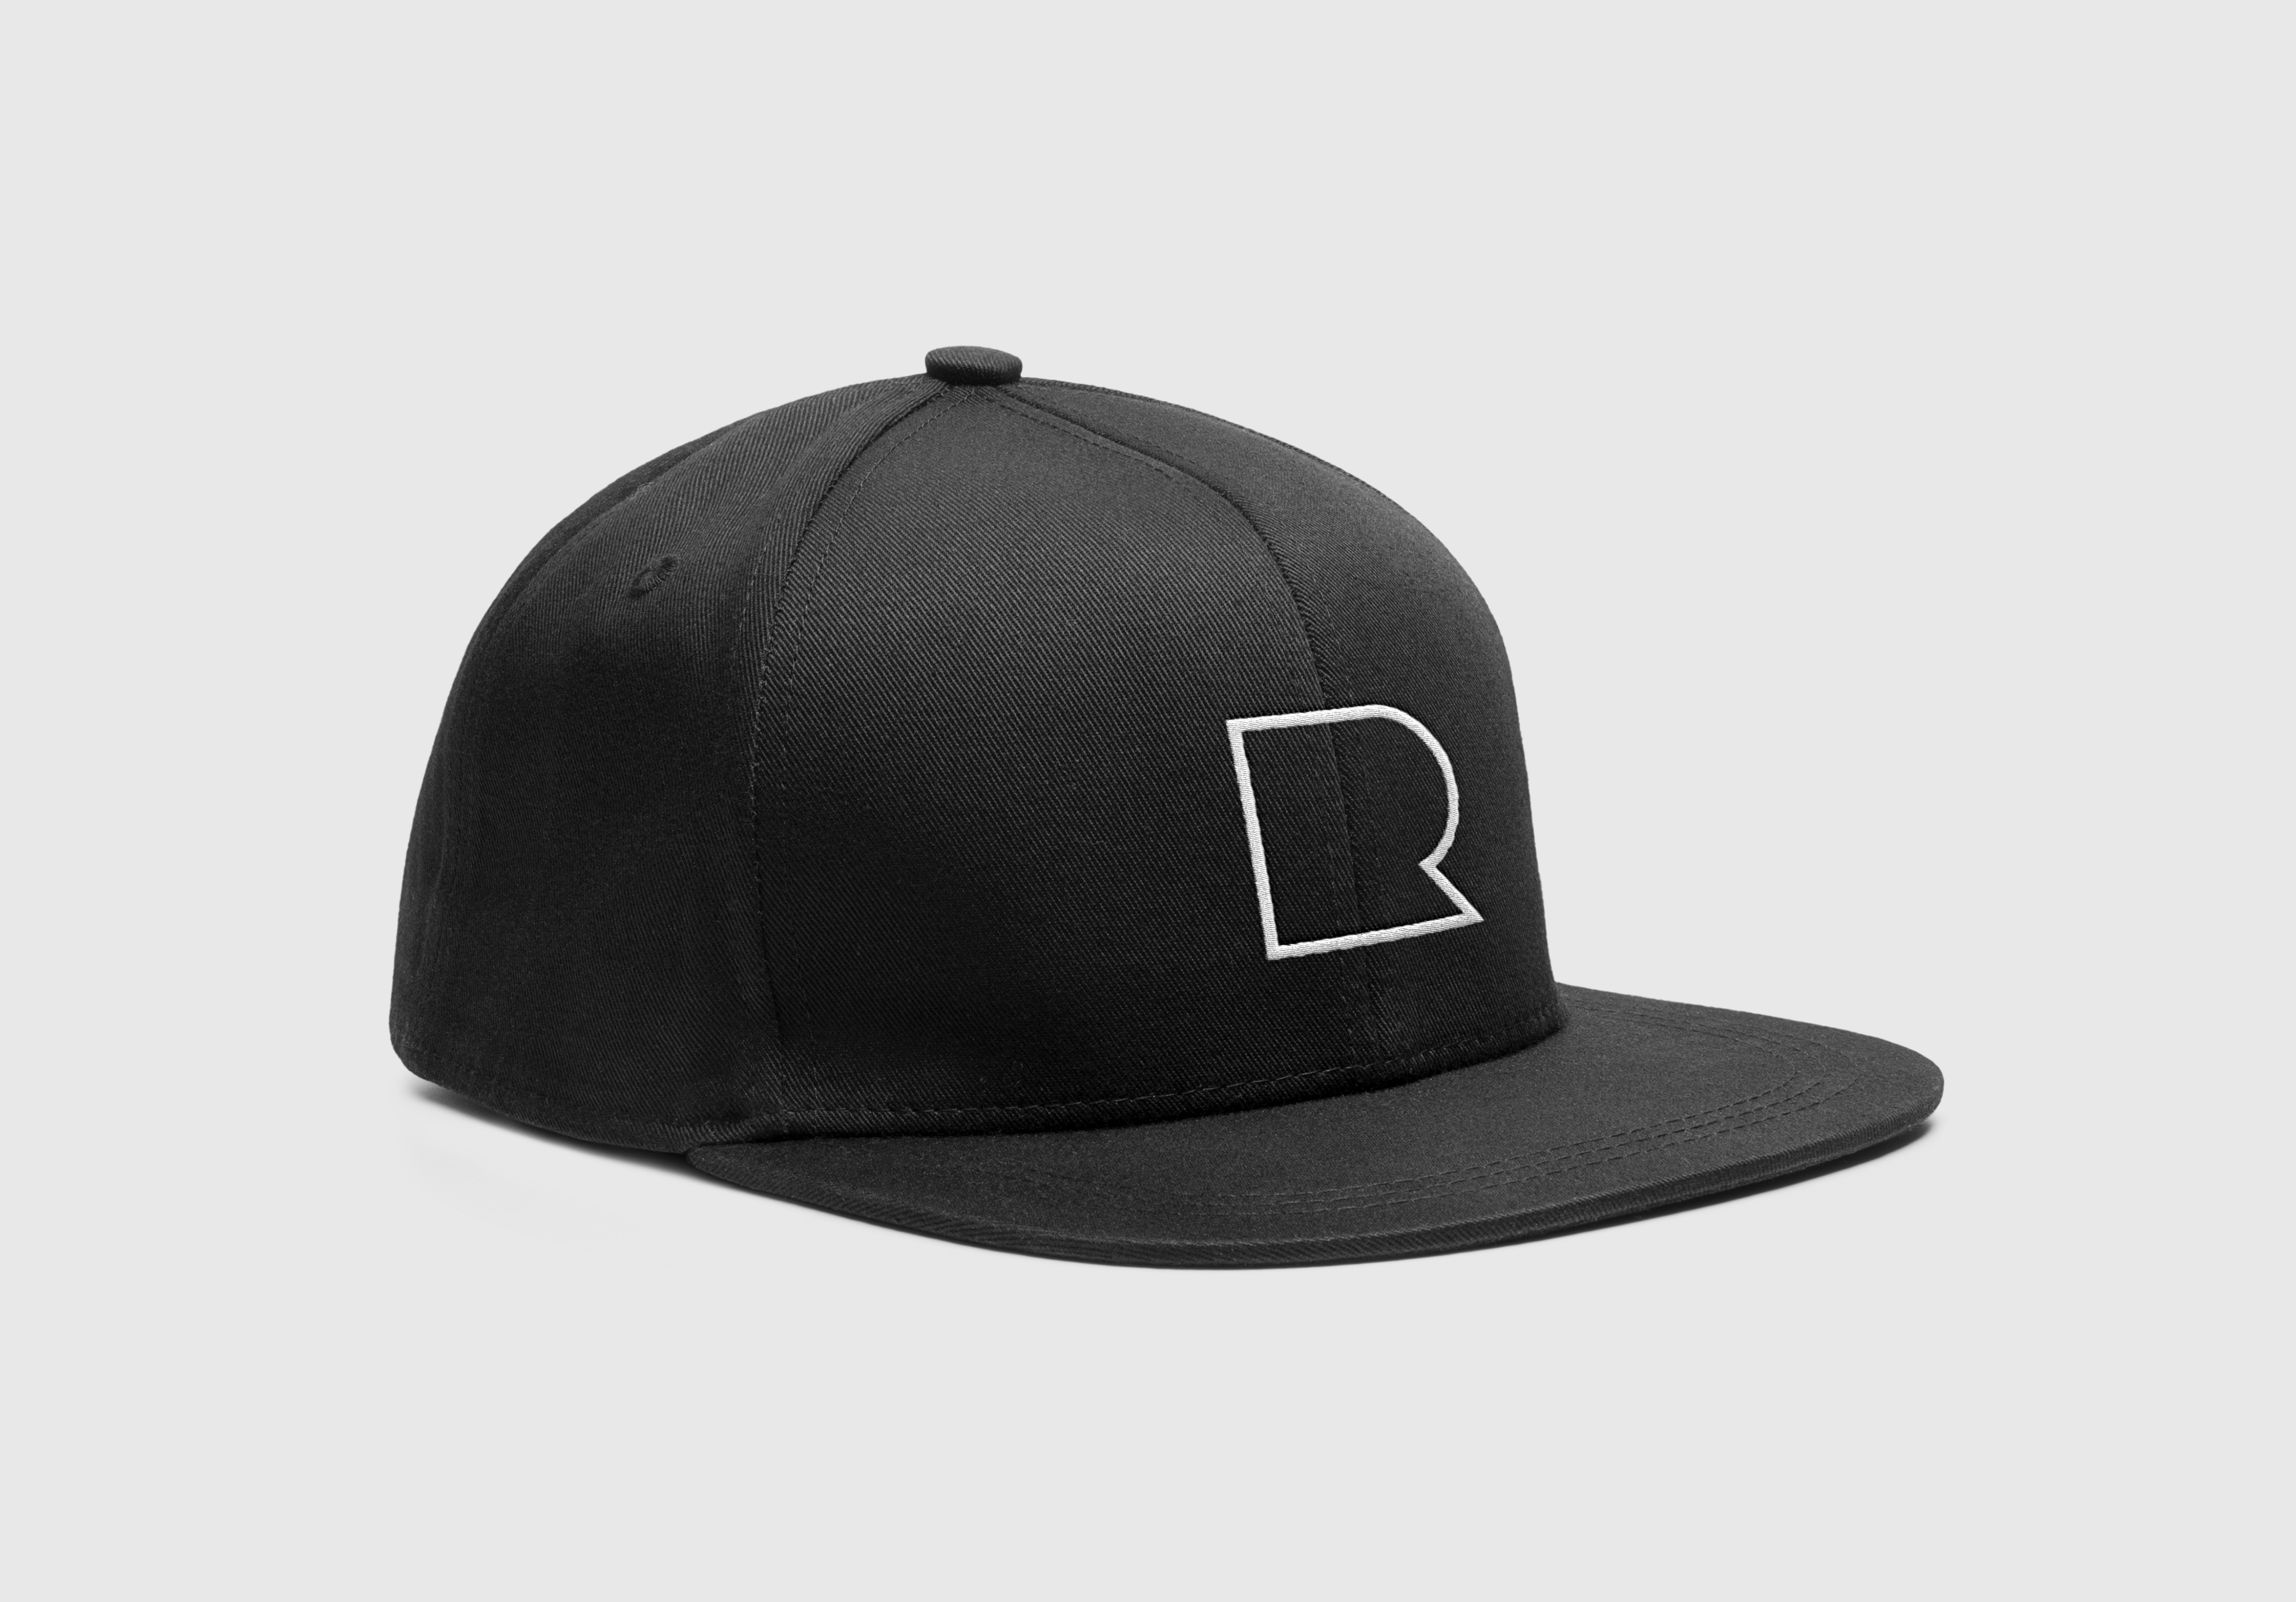 rs ball cap